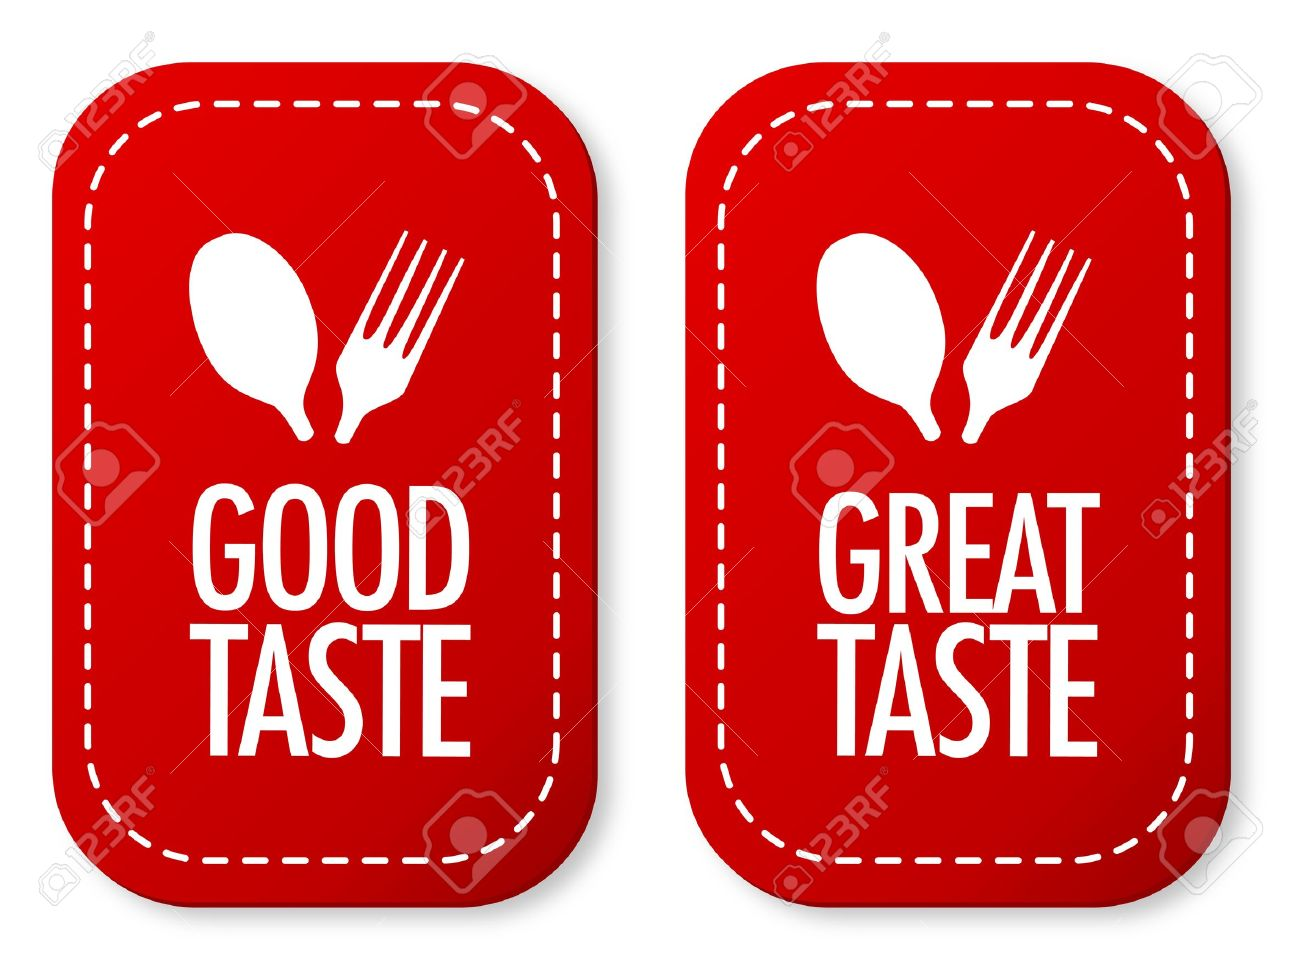 Good taste and Great taste stickers Stock Vector - 11255451